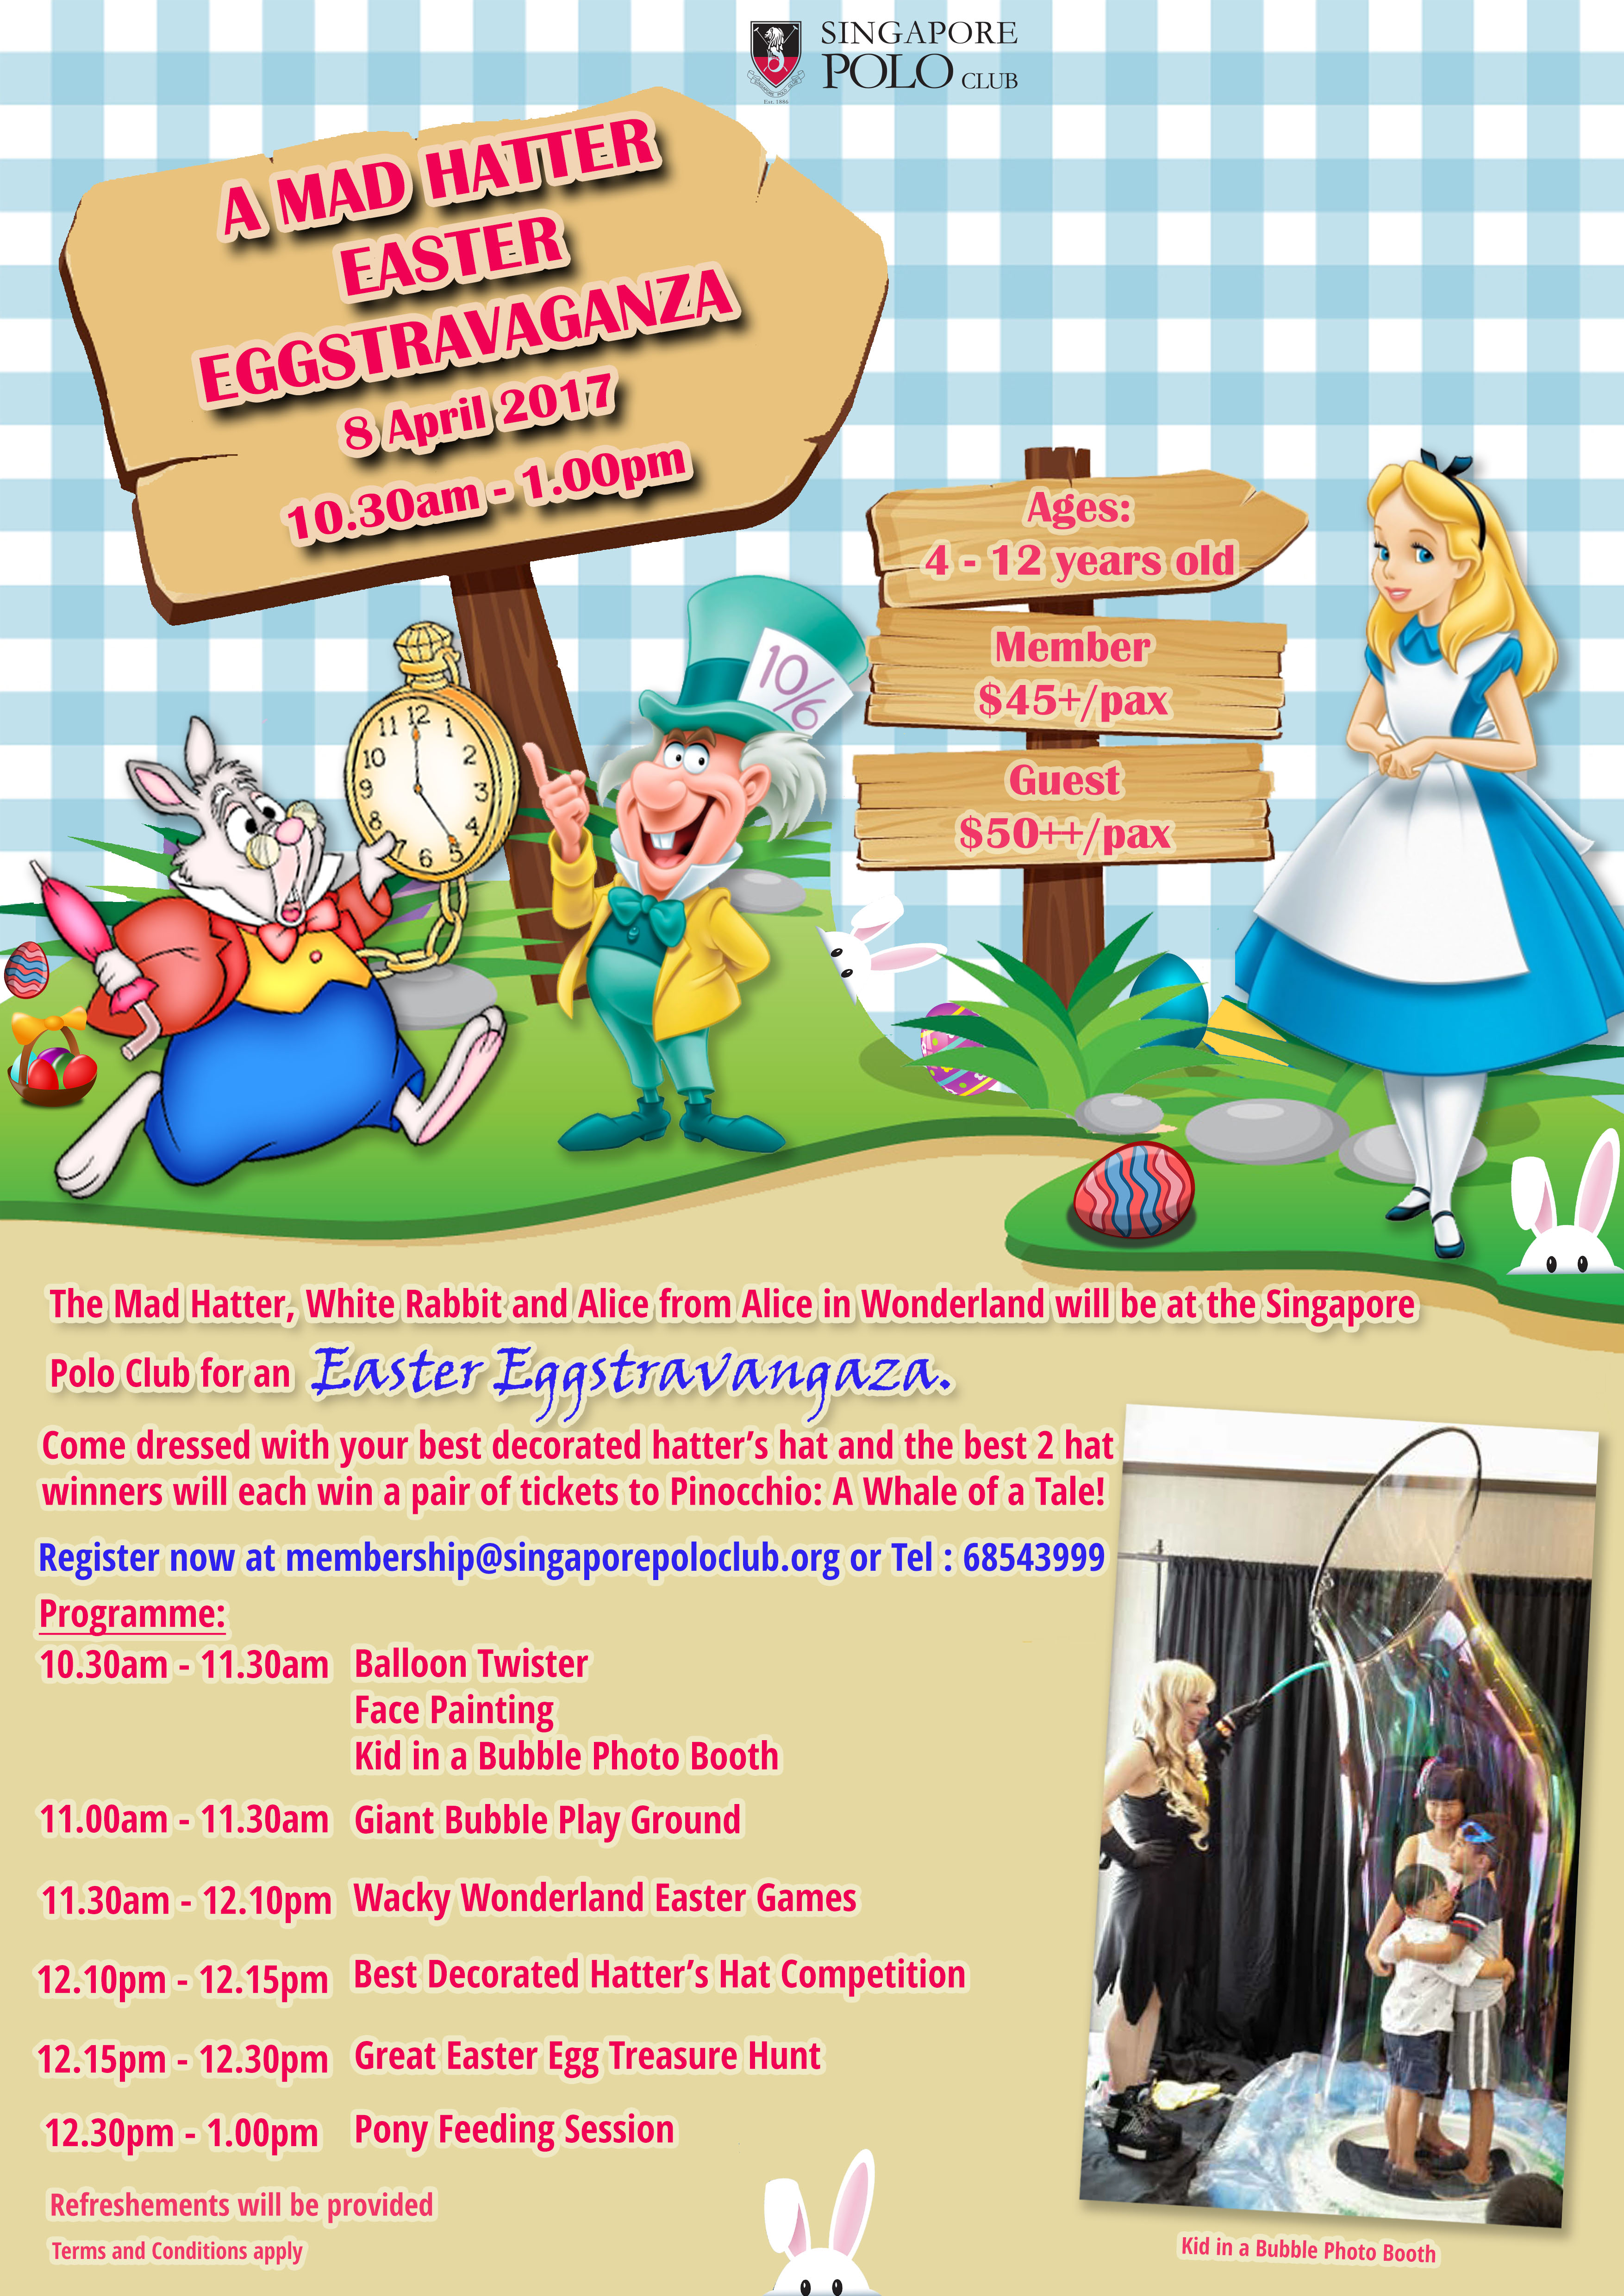 031aec036 A Mad Hatter Easter Eggstravaganza-Events